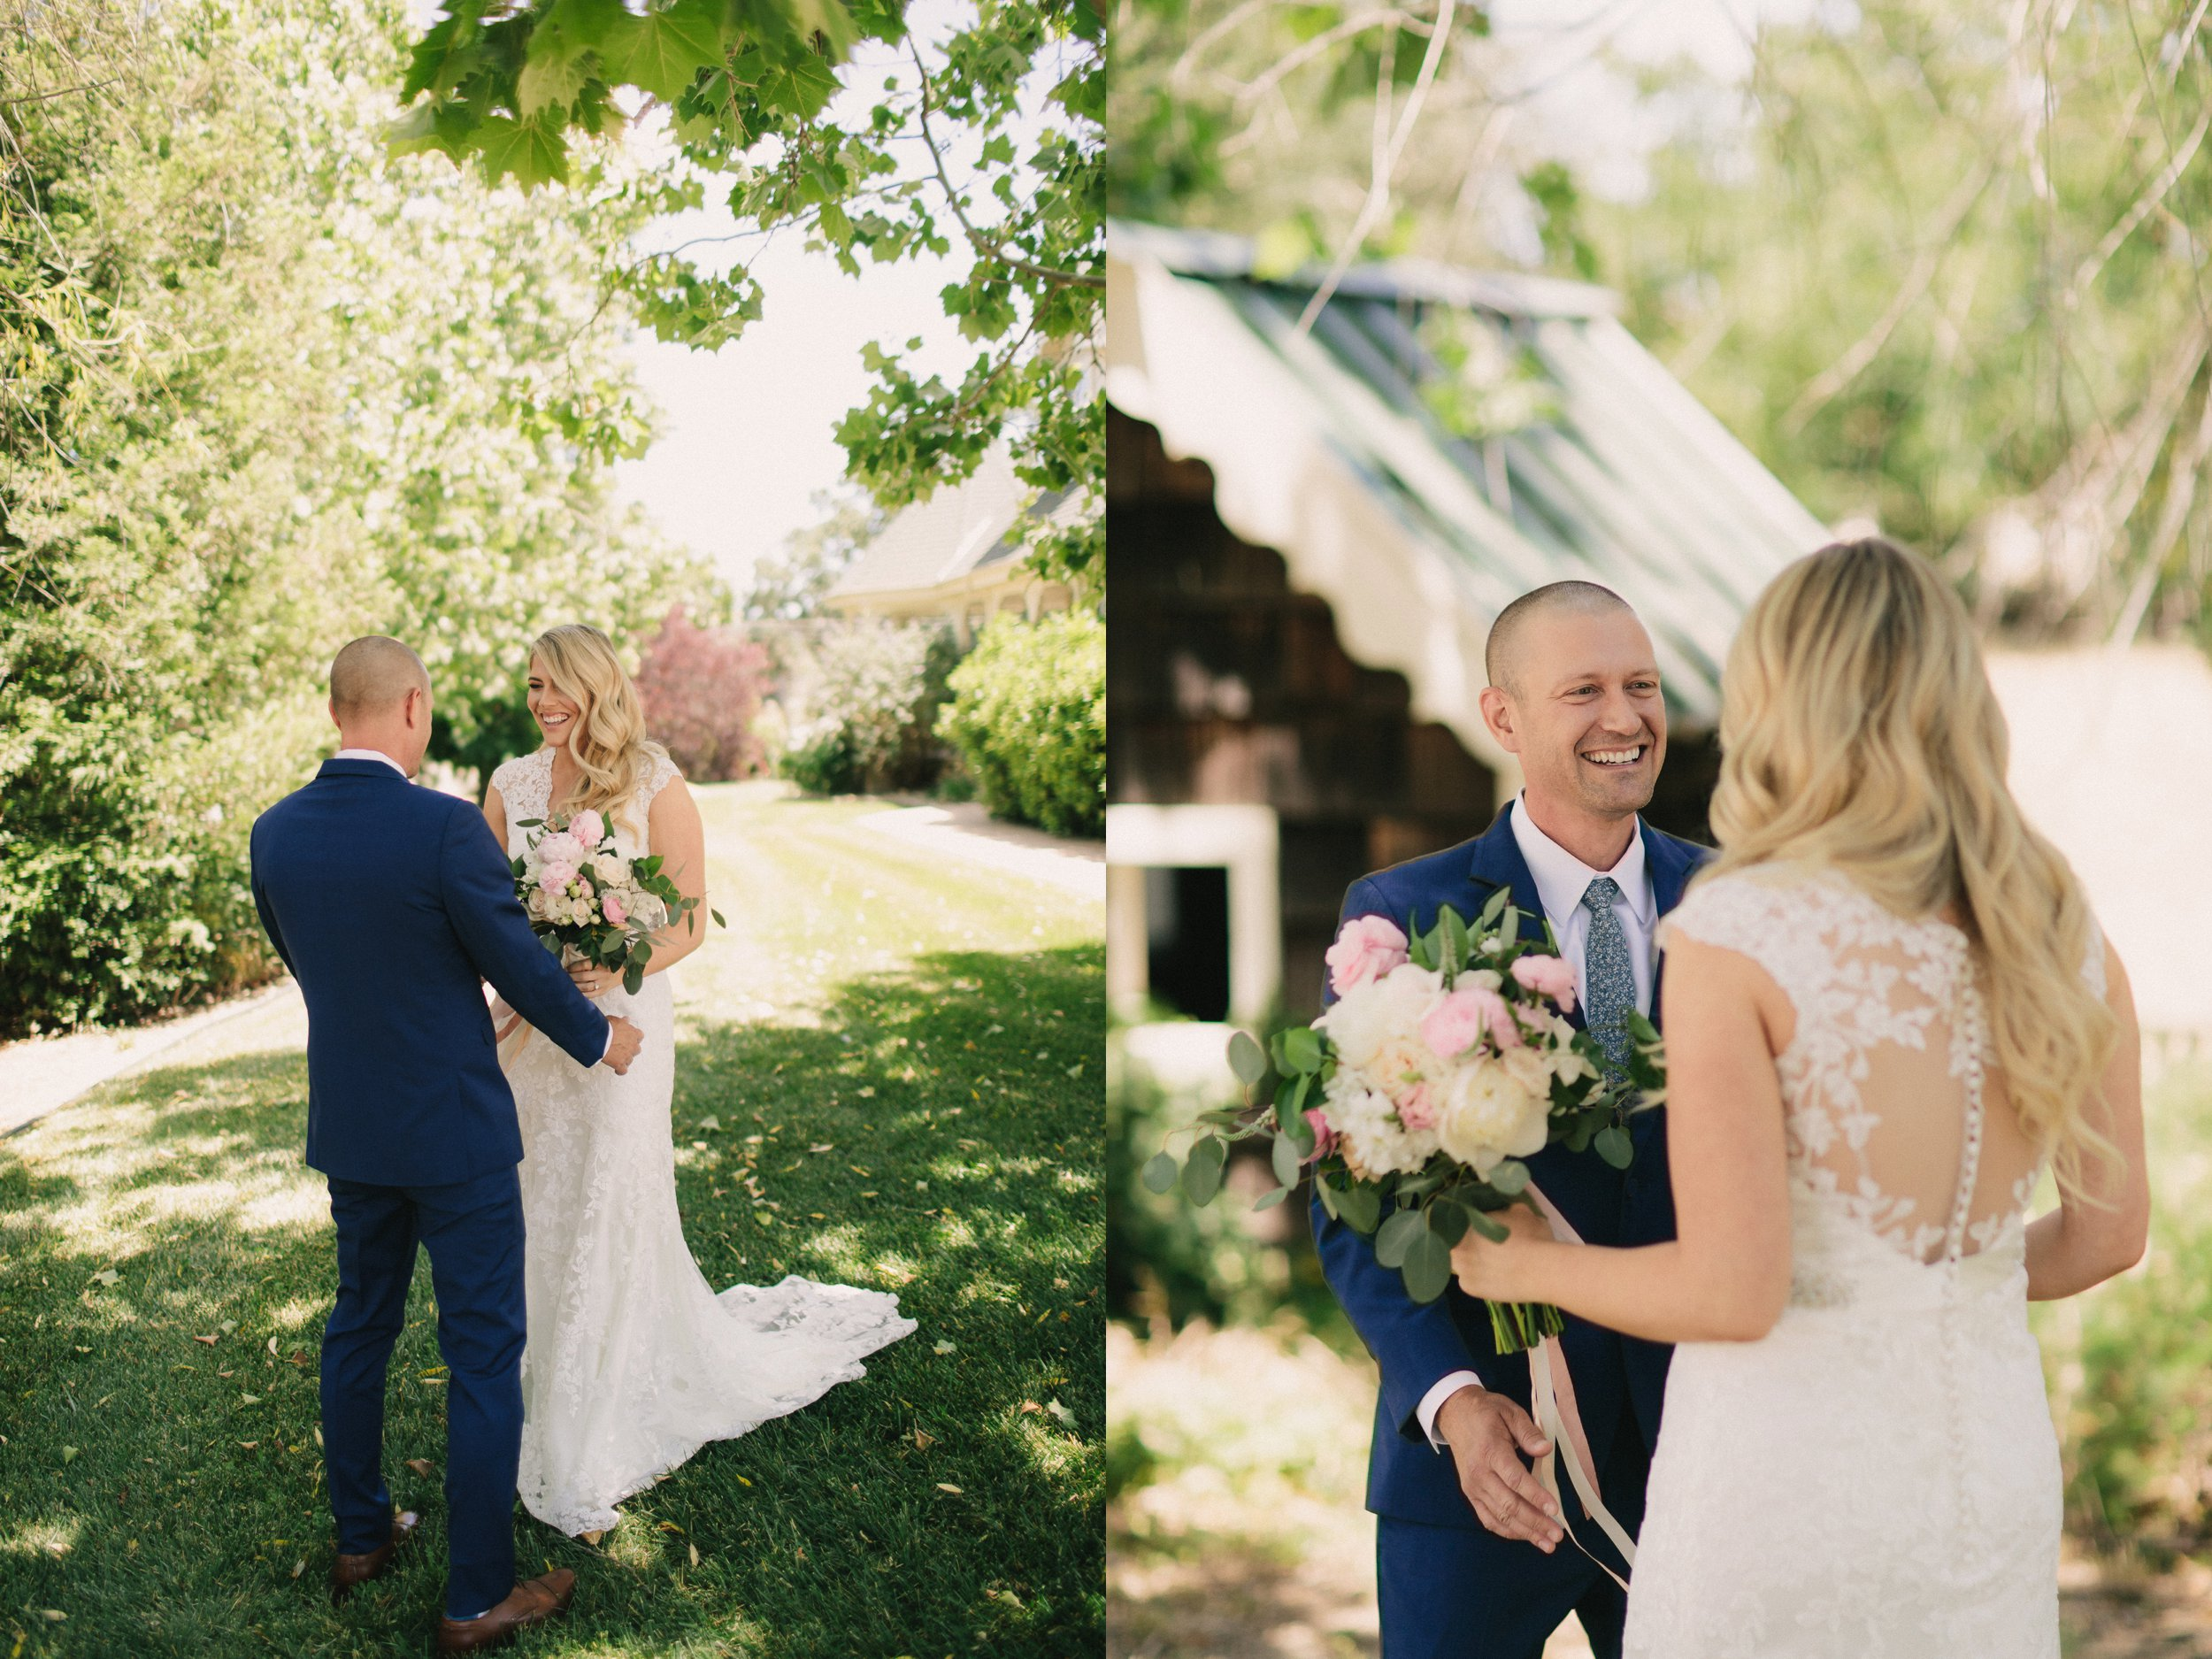 CaliforniaWedding|LindenCloverPhotography_0008.jpg